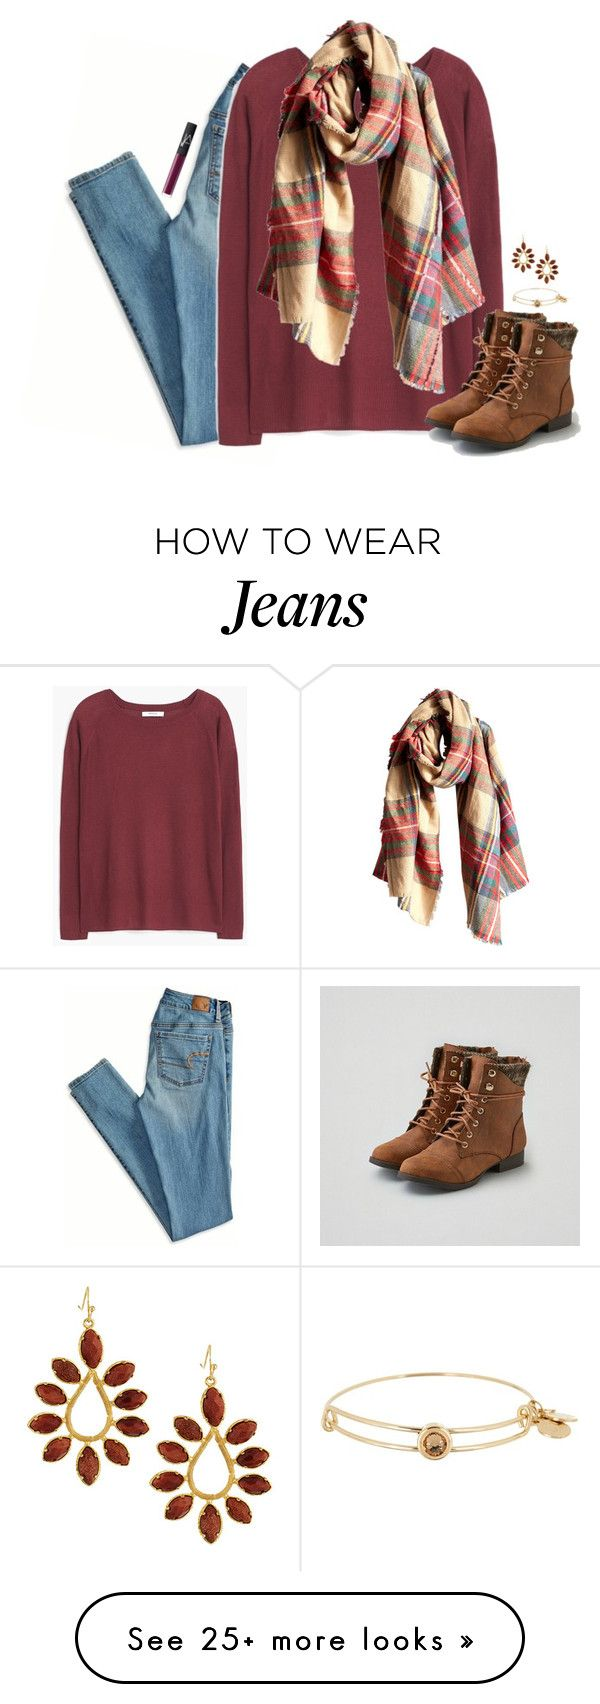 """darling, you were made for me."" by kaley-ii on Polyvore featuring American Eagle Outfitters, MANGO, Wet Seal, Alex and Ani, Kendra Scott and NARS Cosmetics"